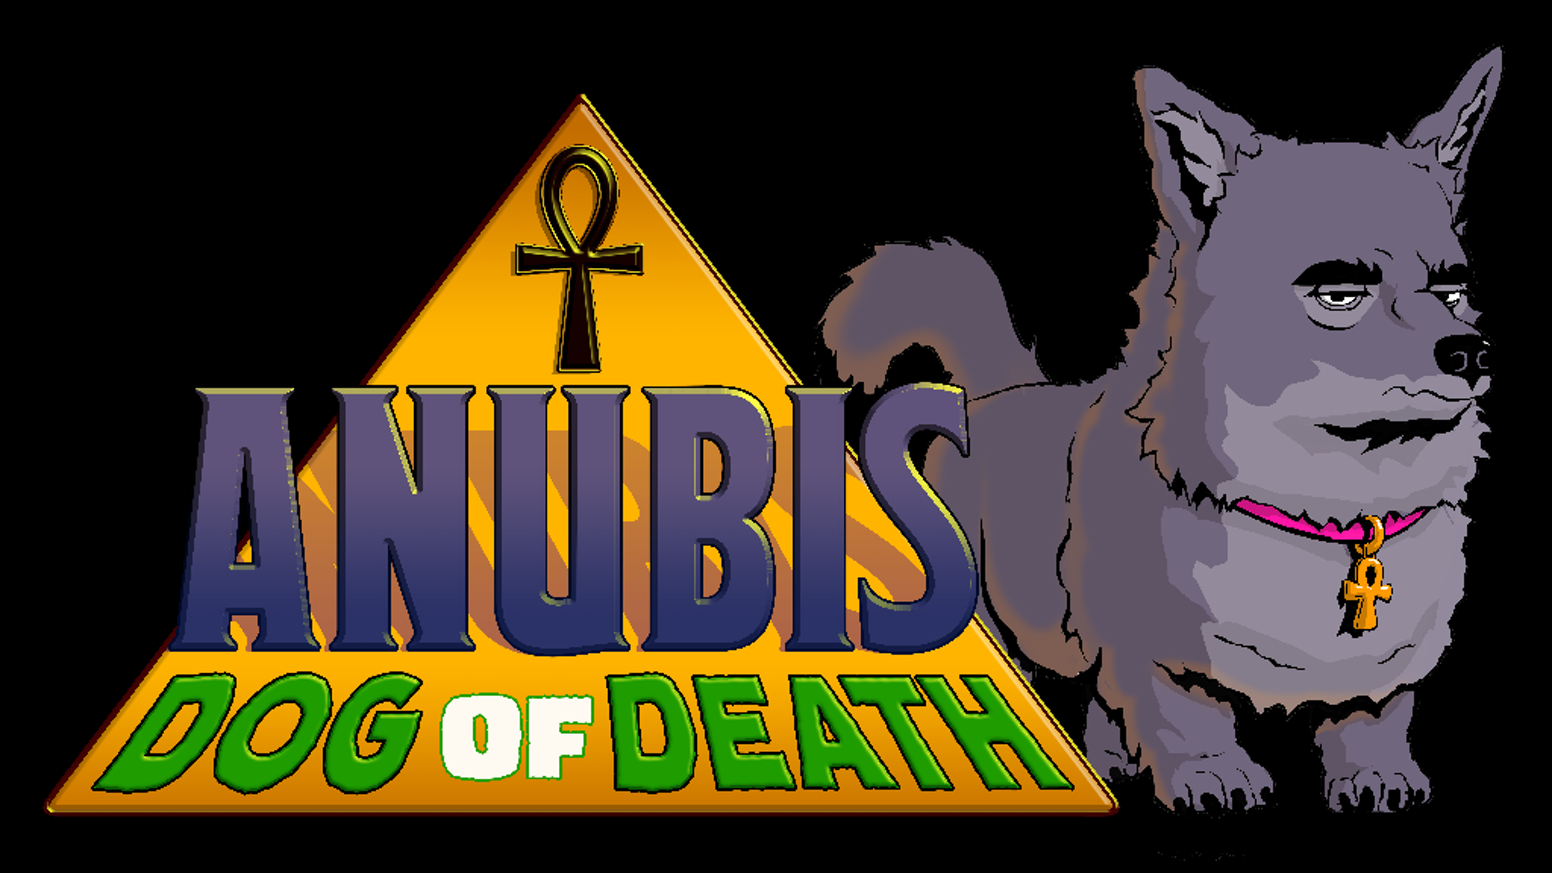 The first issue of an action comedy comic book series about the Egyptian god of death, doomed to an existence as a tiny purse dog.